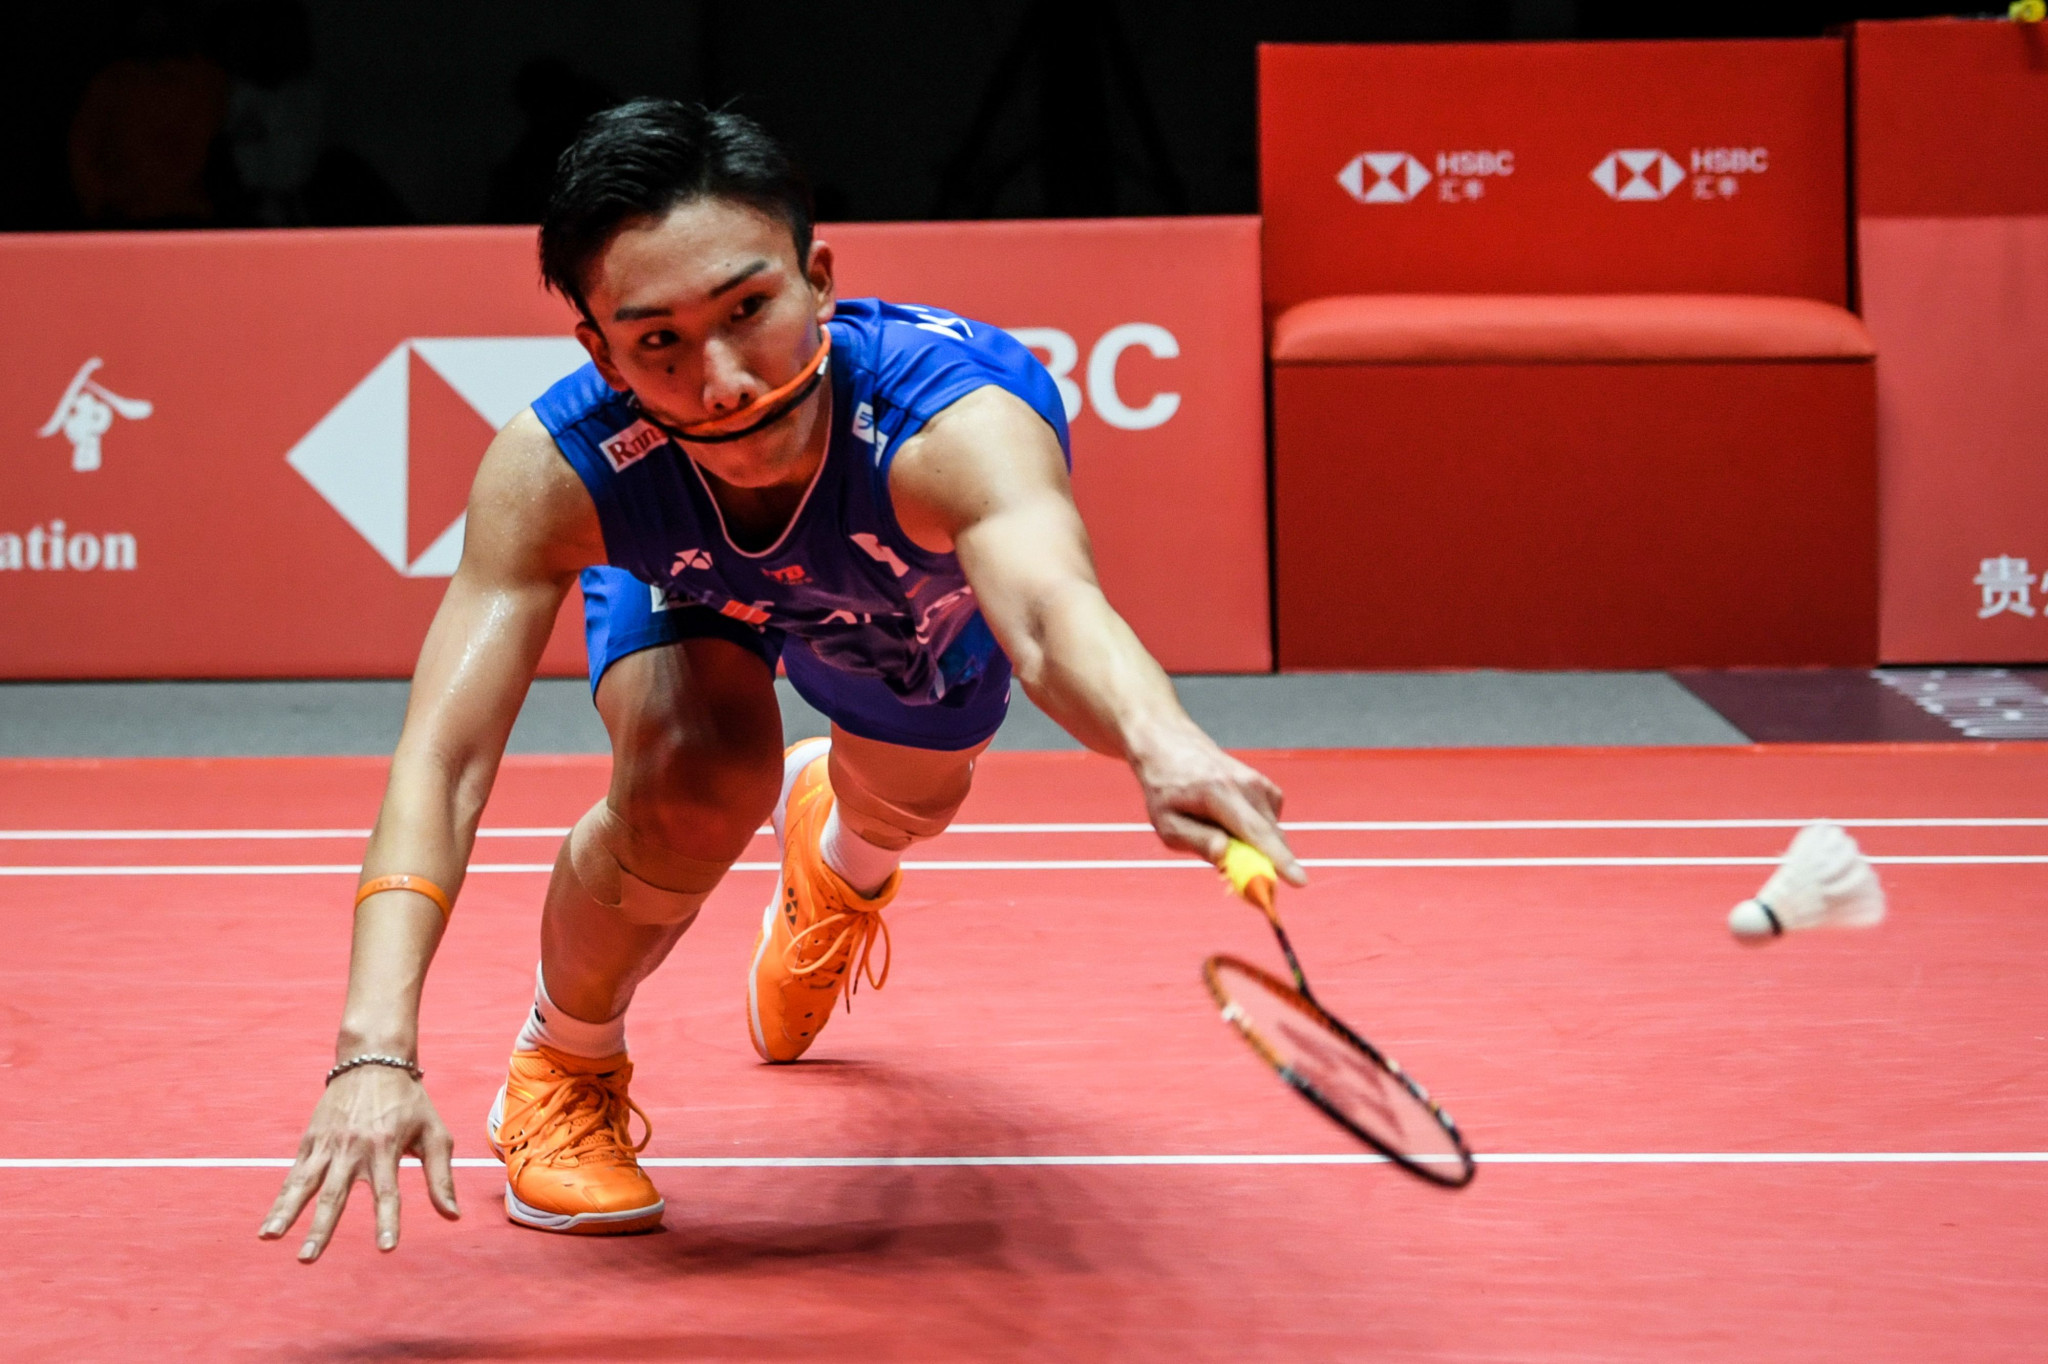 Top seed Kento Momota of Japan has moved a step closer to claiming the men's singles title at the All England Badminton Championships in Birmingham ©Getty Images